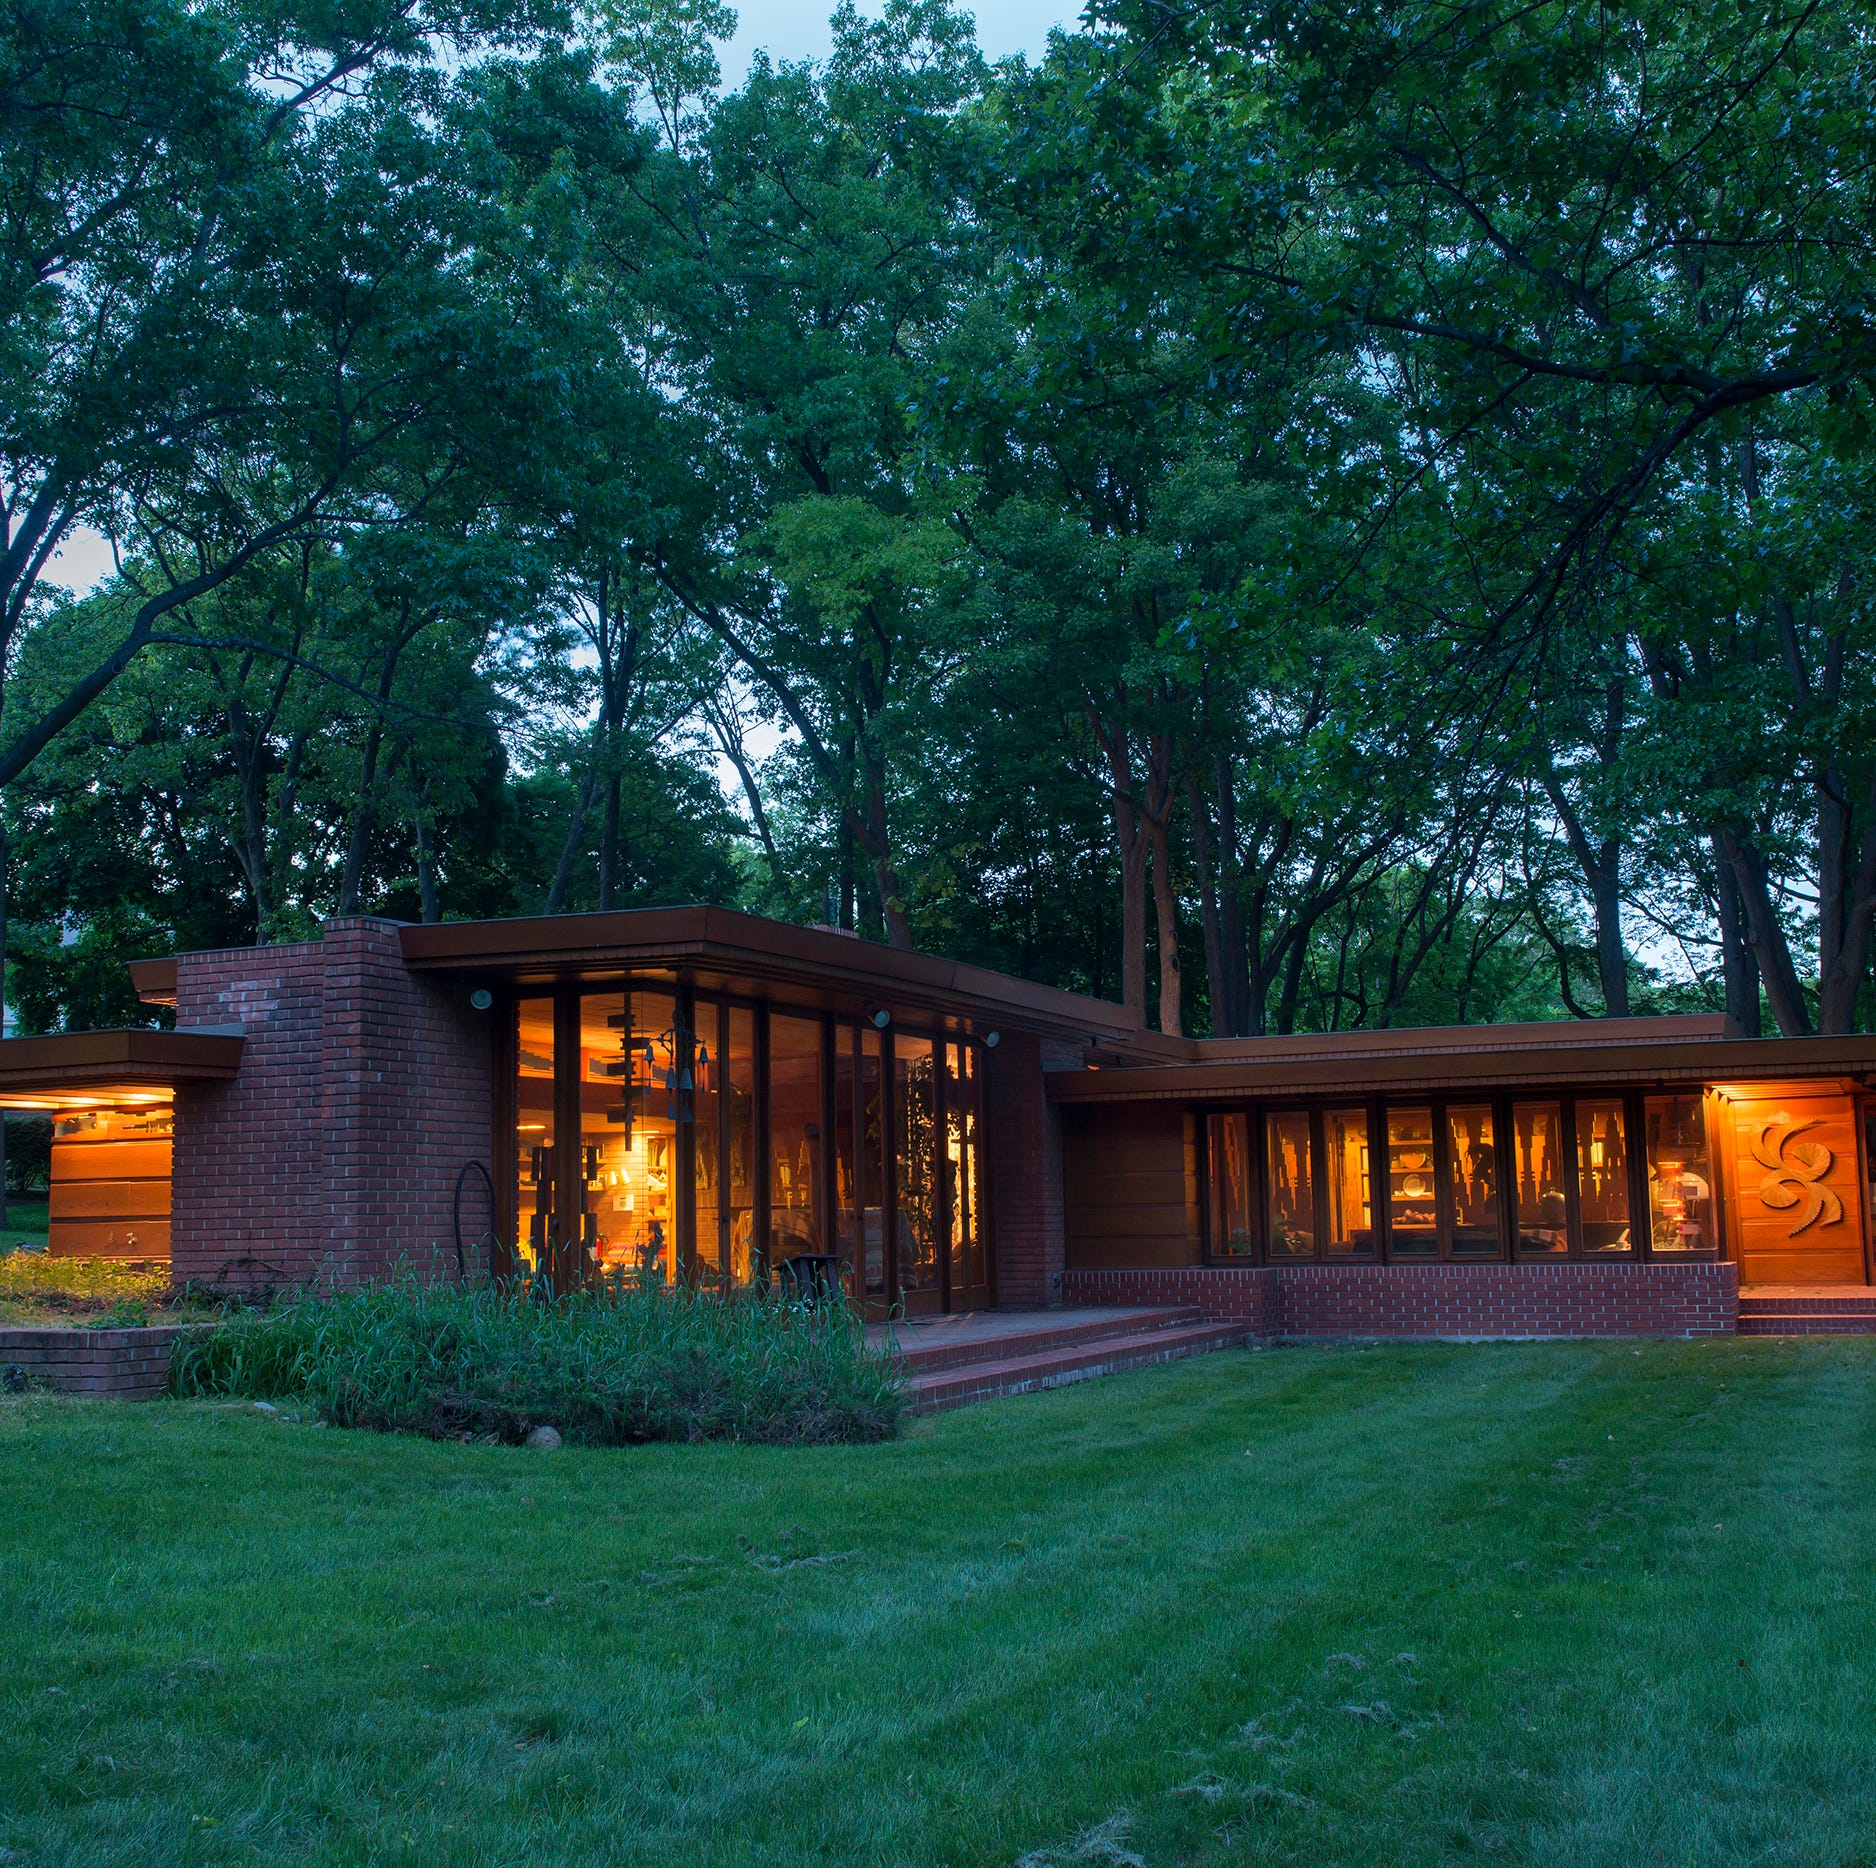 Visit or stay in some of Frank Lloyd Wright's homes in Michigan